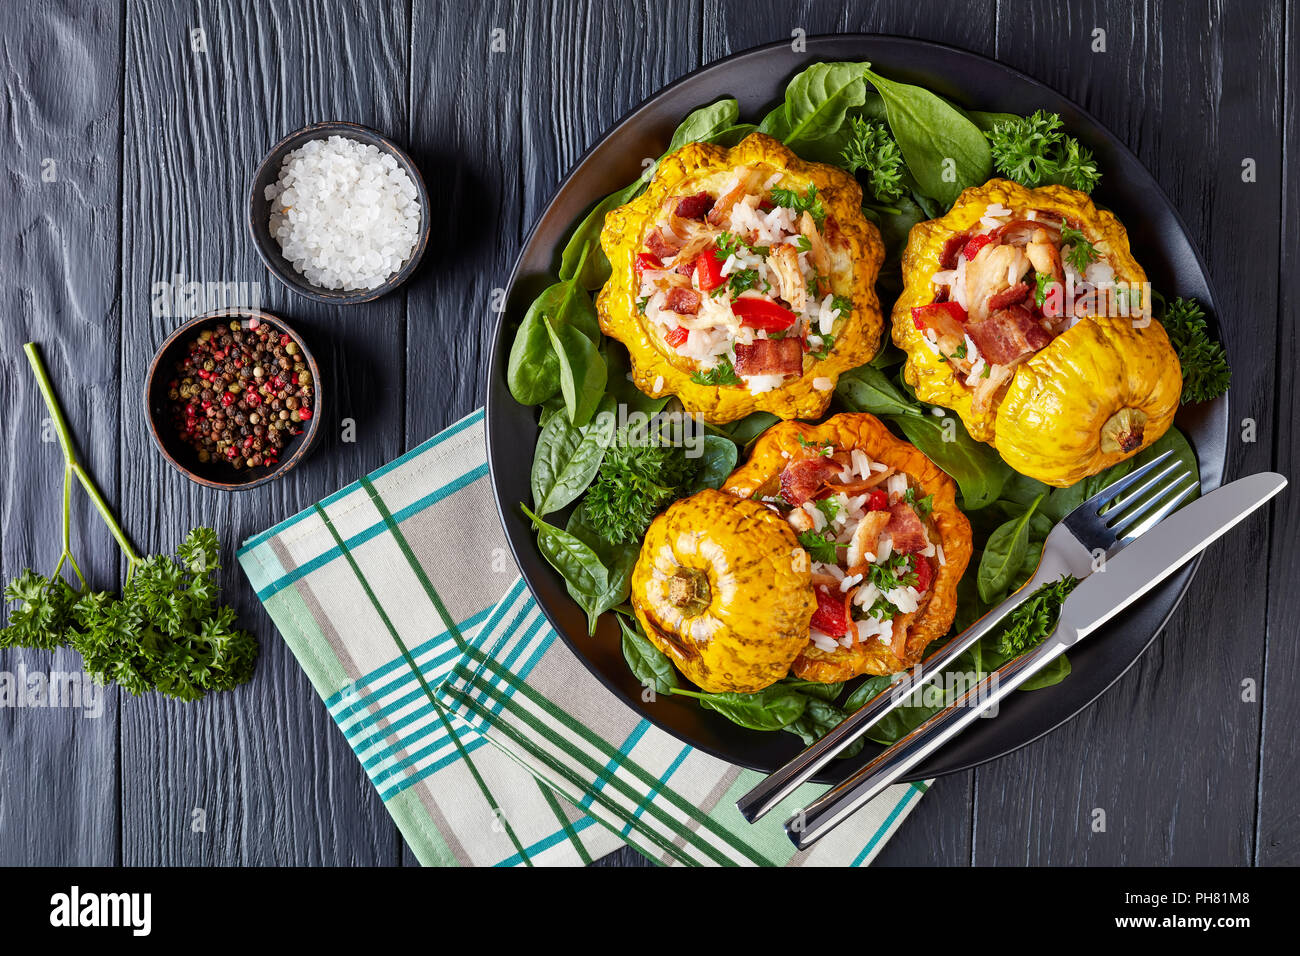 close-up of  baked Pattypan squash stuffed with rice, fried chicken meat, crispy fried bacon, red bell pepper and served with spinach leaves and parsl - Stock Image